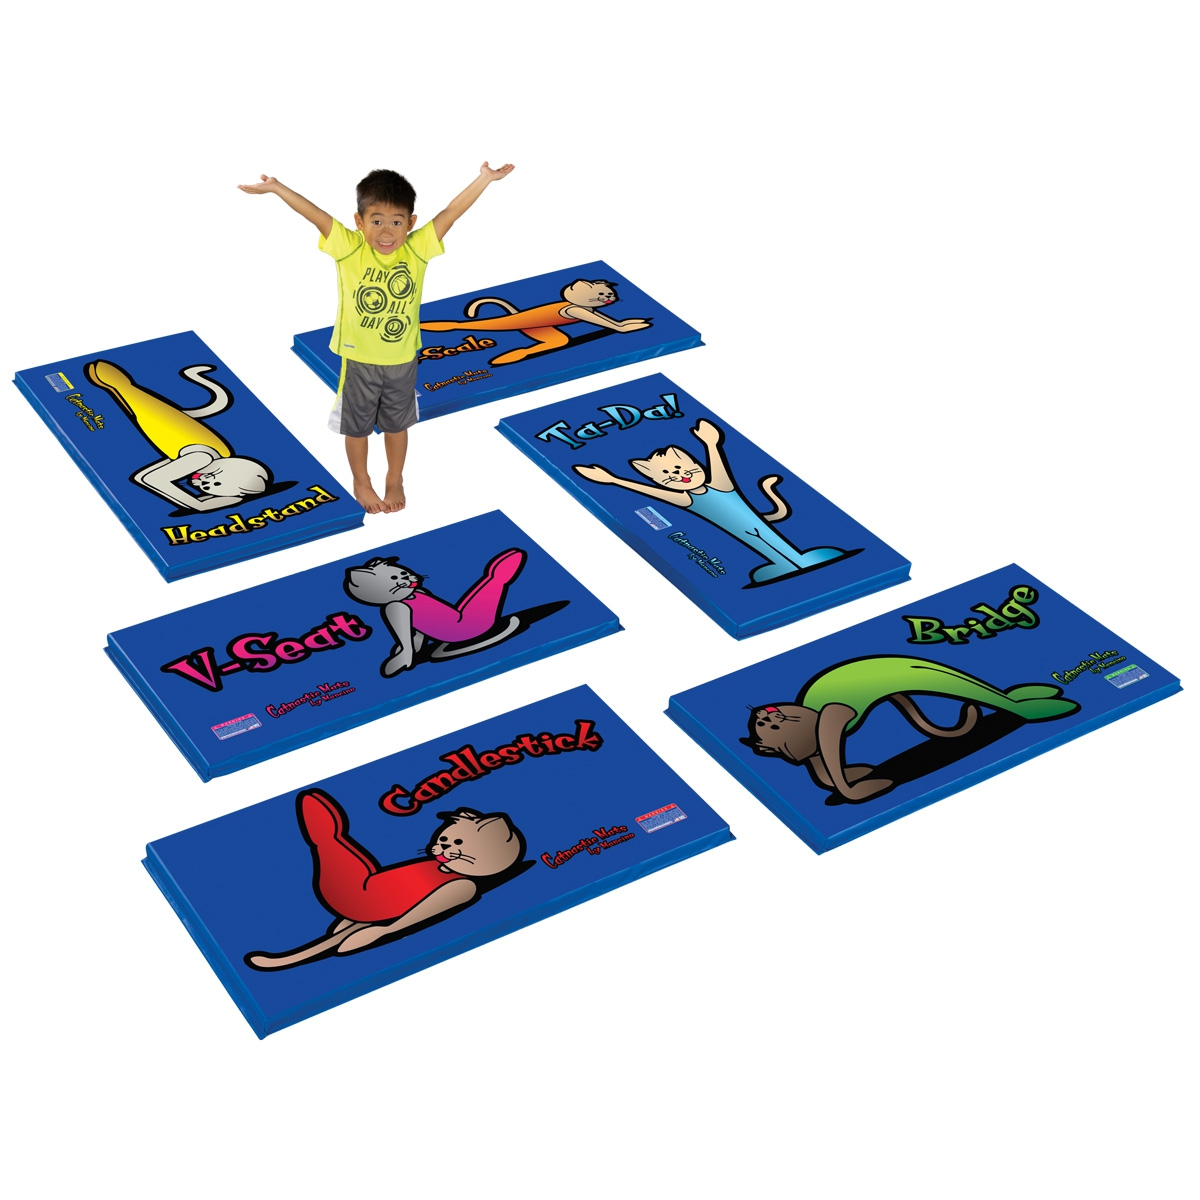 6 body shape Catnastics Gym Mats for tumbling